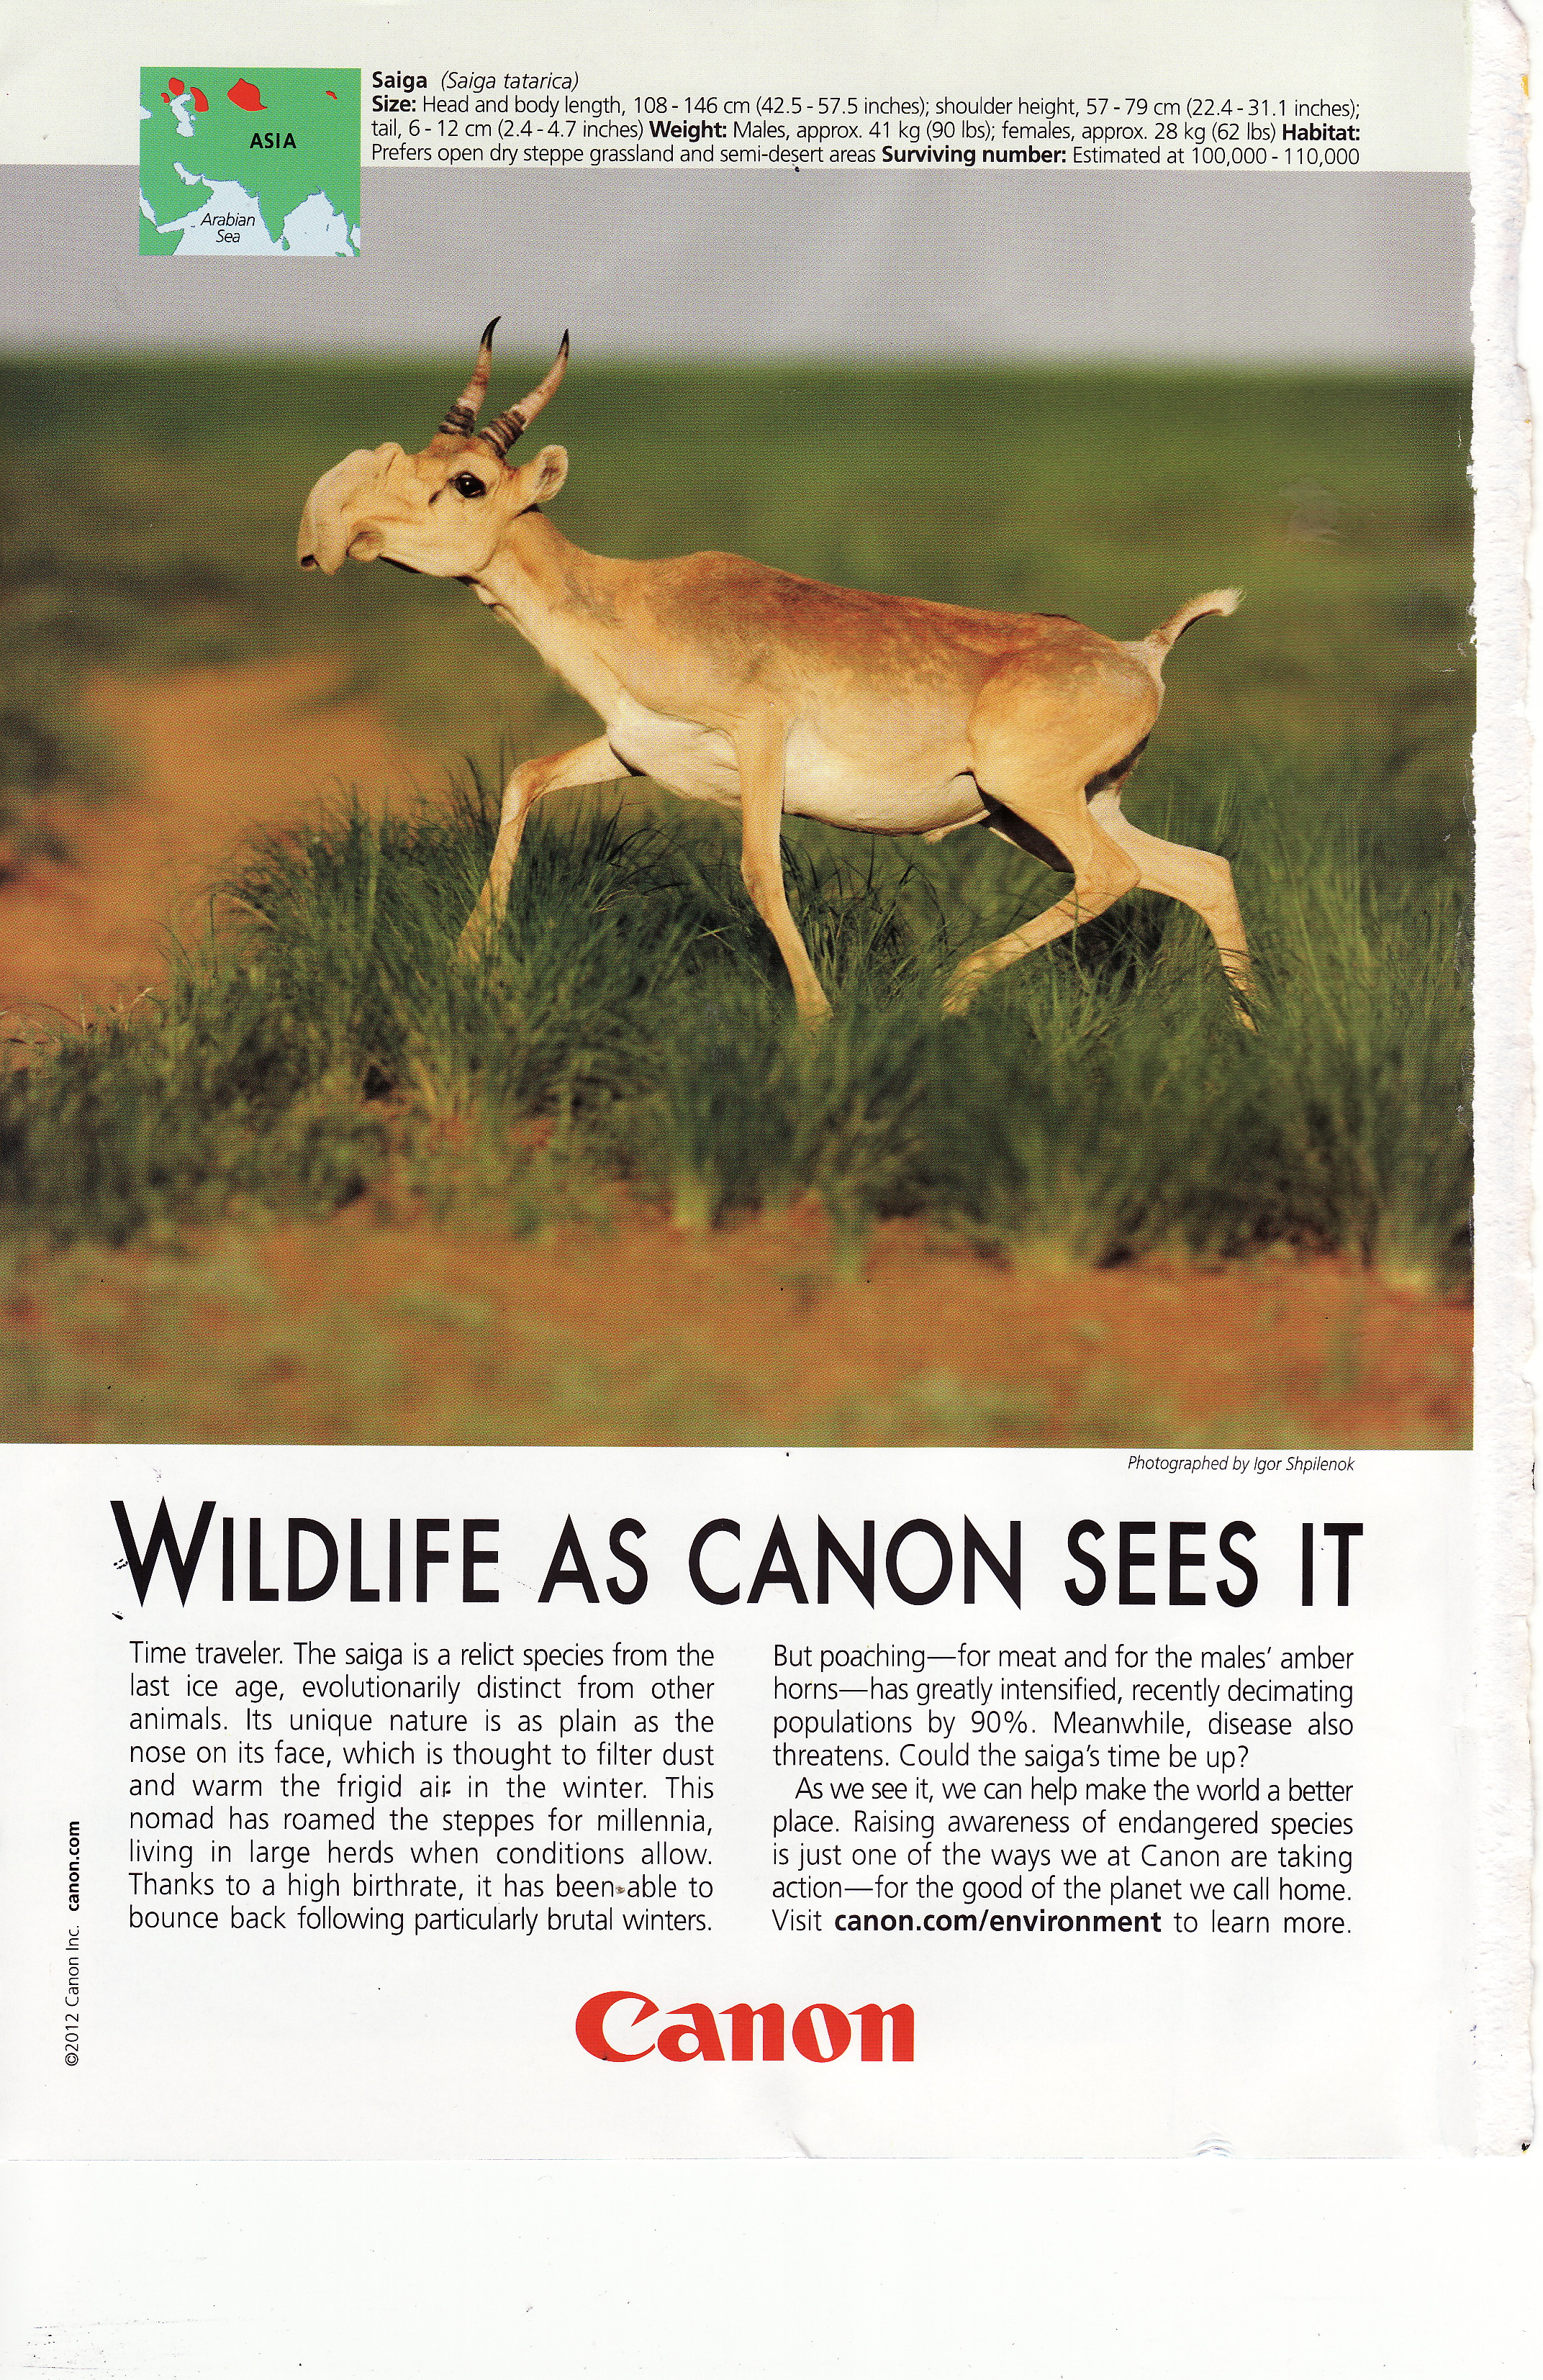 Don't know if you saw this Canon camera ad about the endangered saiga. It ran in National Geographic and deserves highlighting because it's both beautiful and substantive. Don't you love the snout of the saiga? I think Eli's nose is feeling like a saiga schnoz today because of early fall allergies.